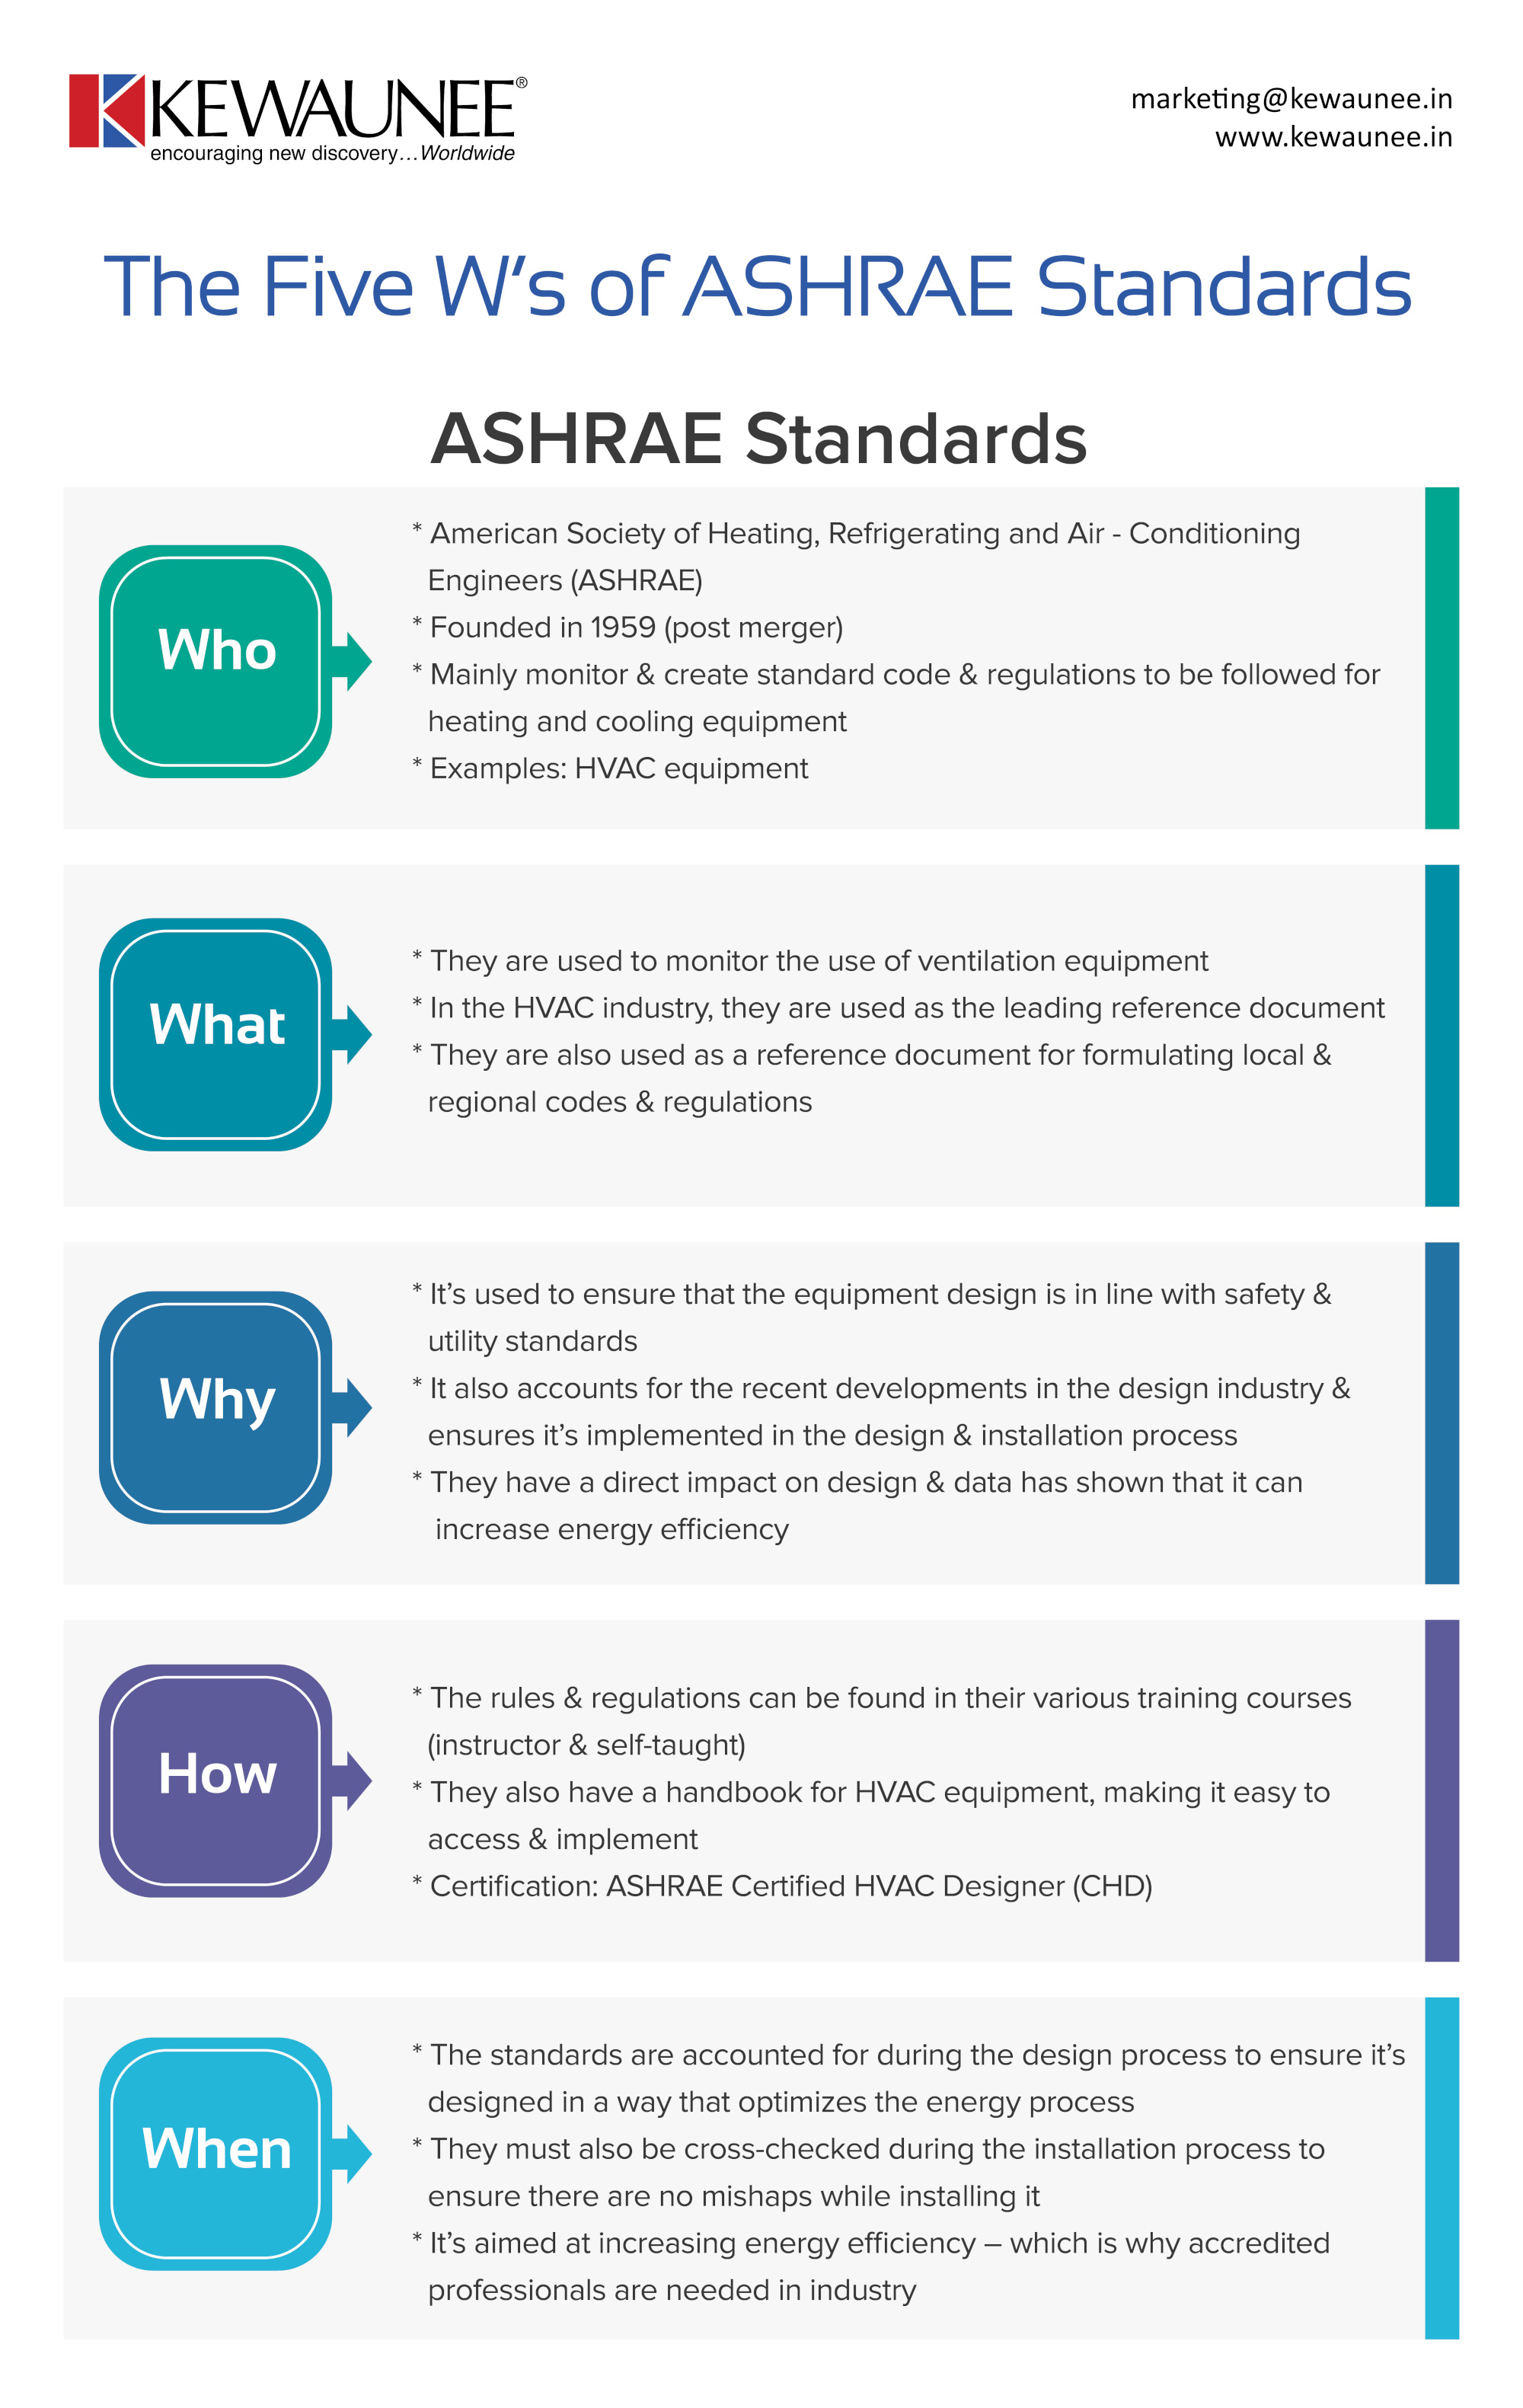 The Five W's of ASHRAE Standards